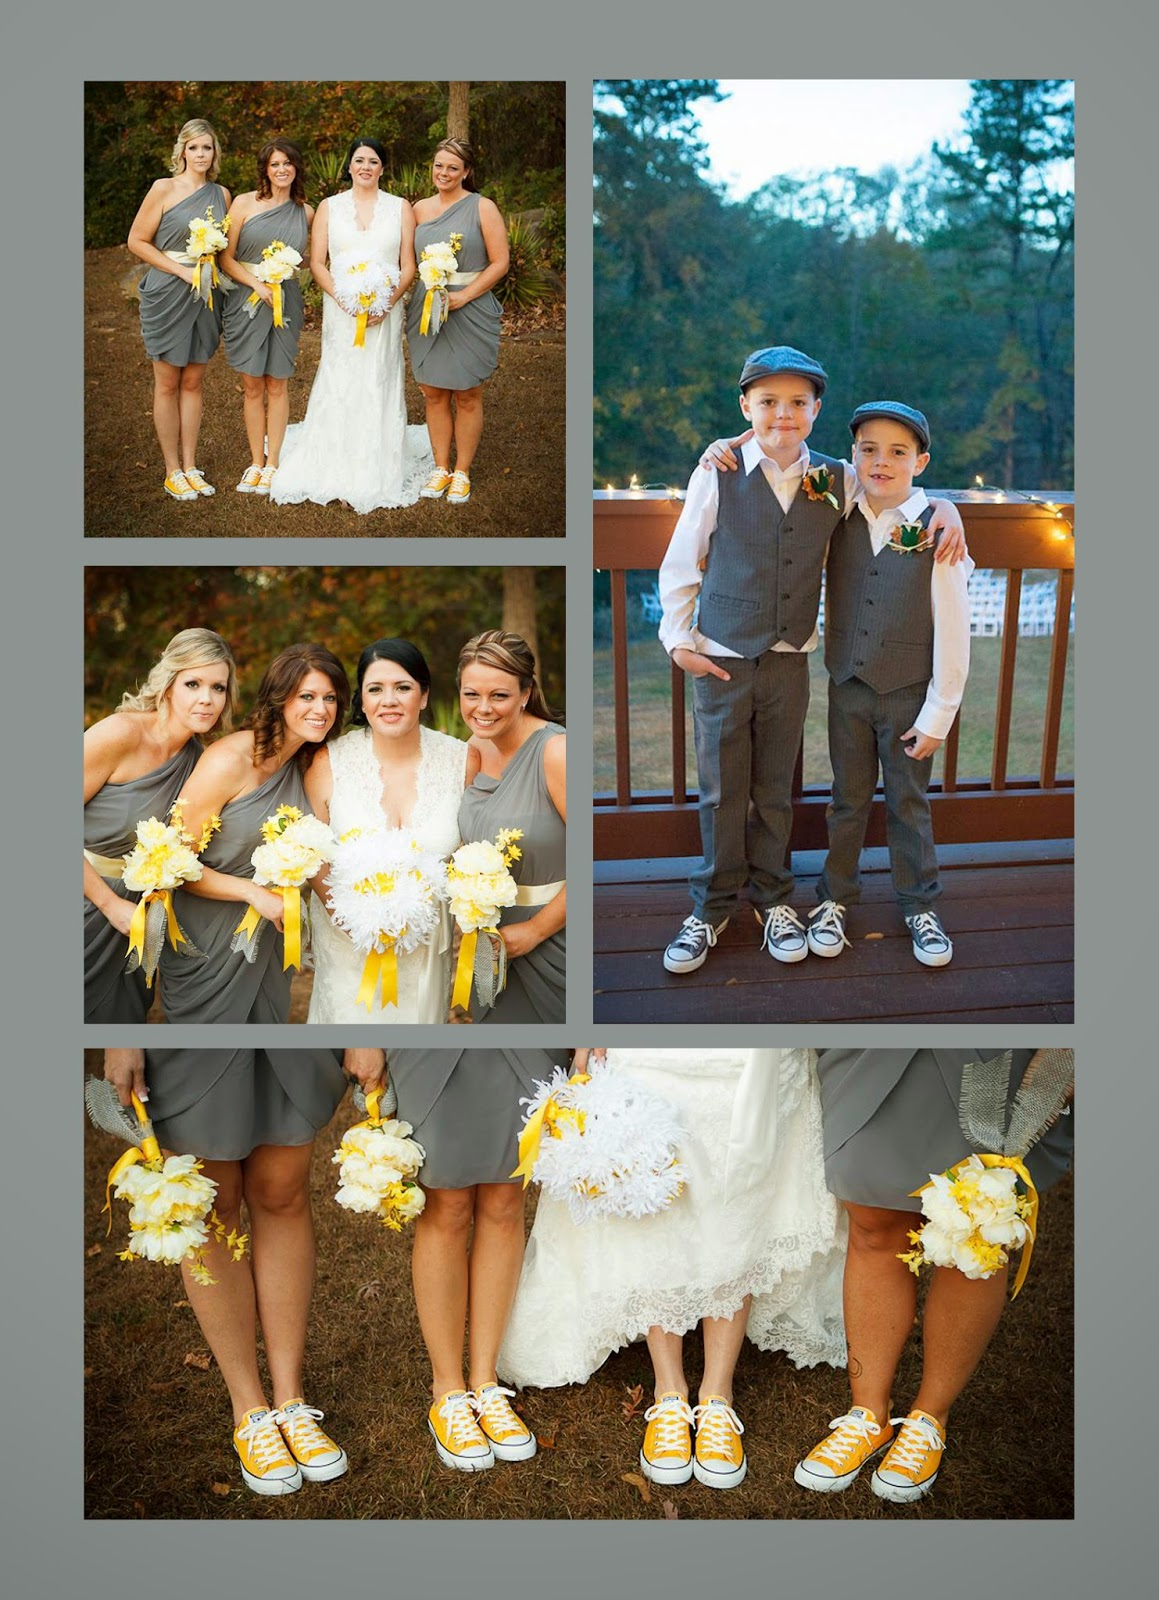 Gray and yellow fall wedding vecoma at the yellow rivervecoma gray and yellow fall wedding ombrellifo Image collections